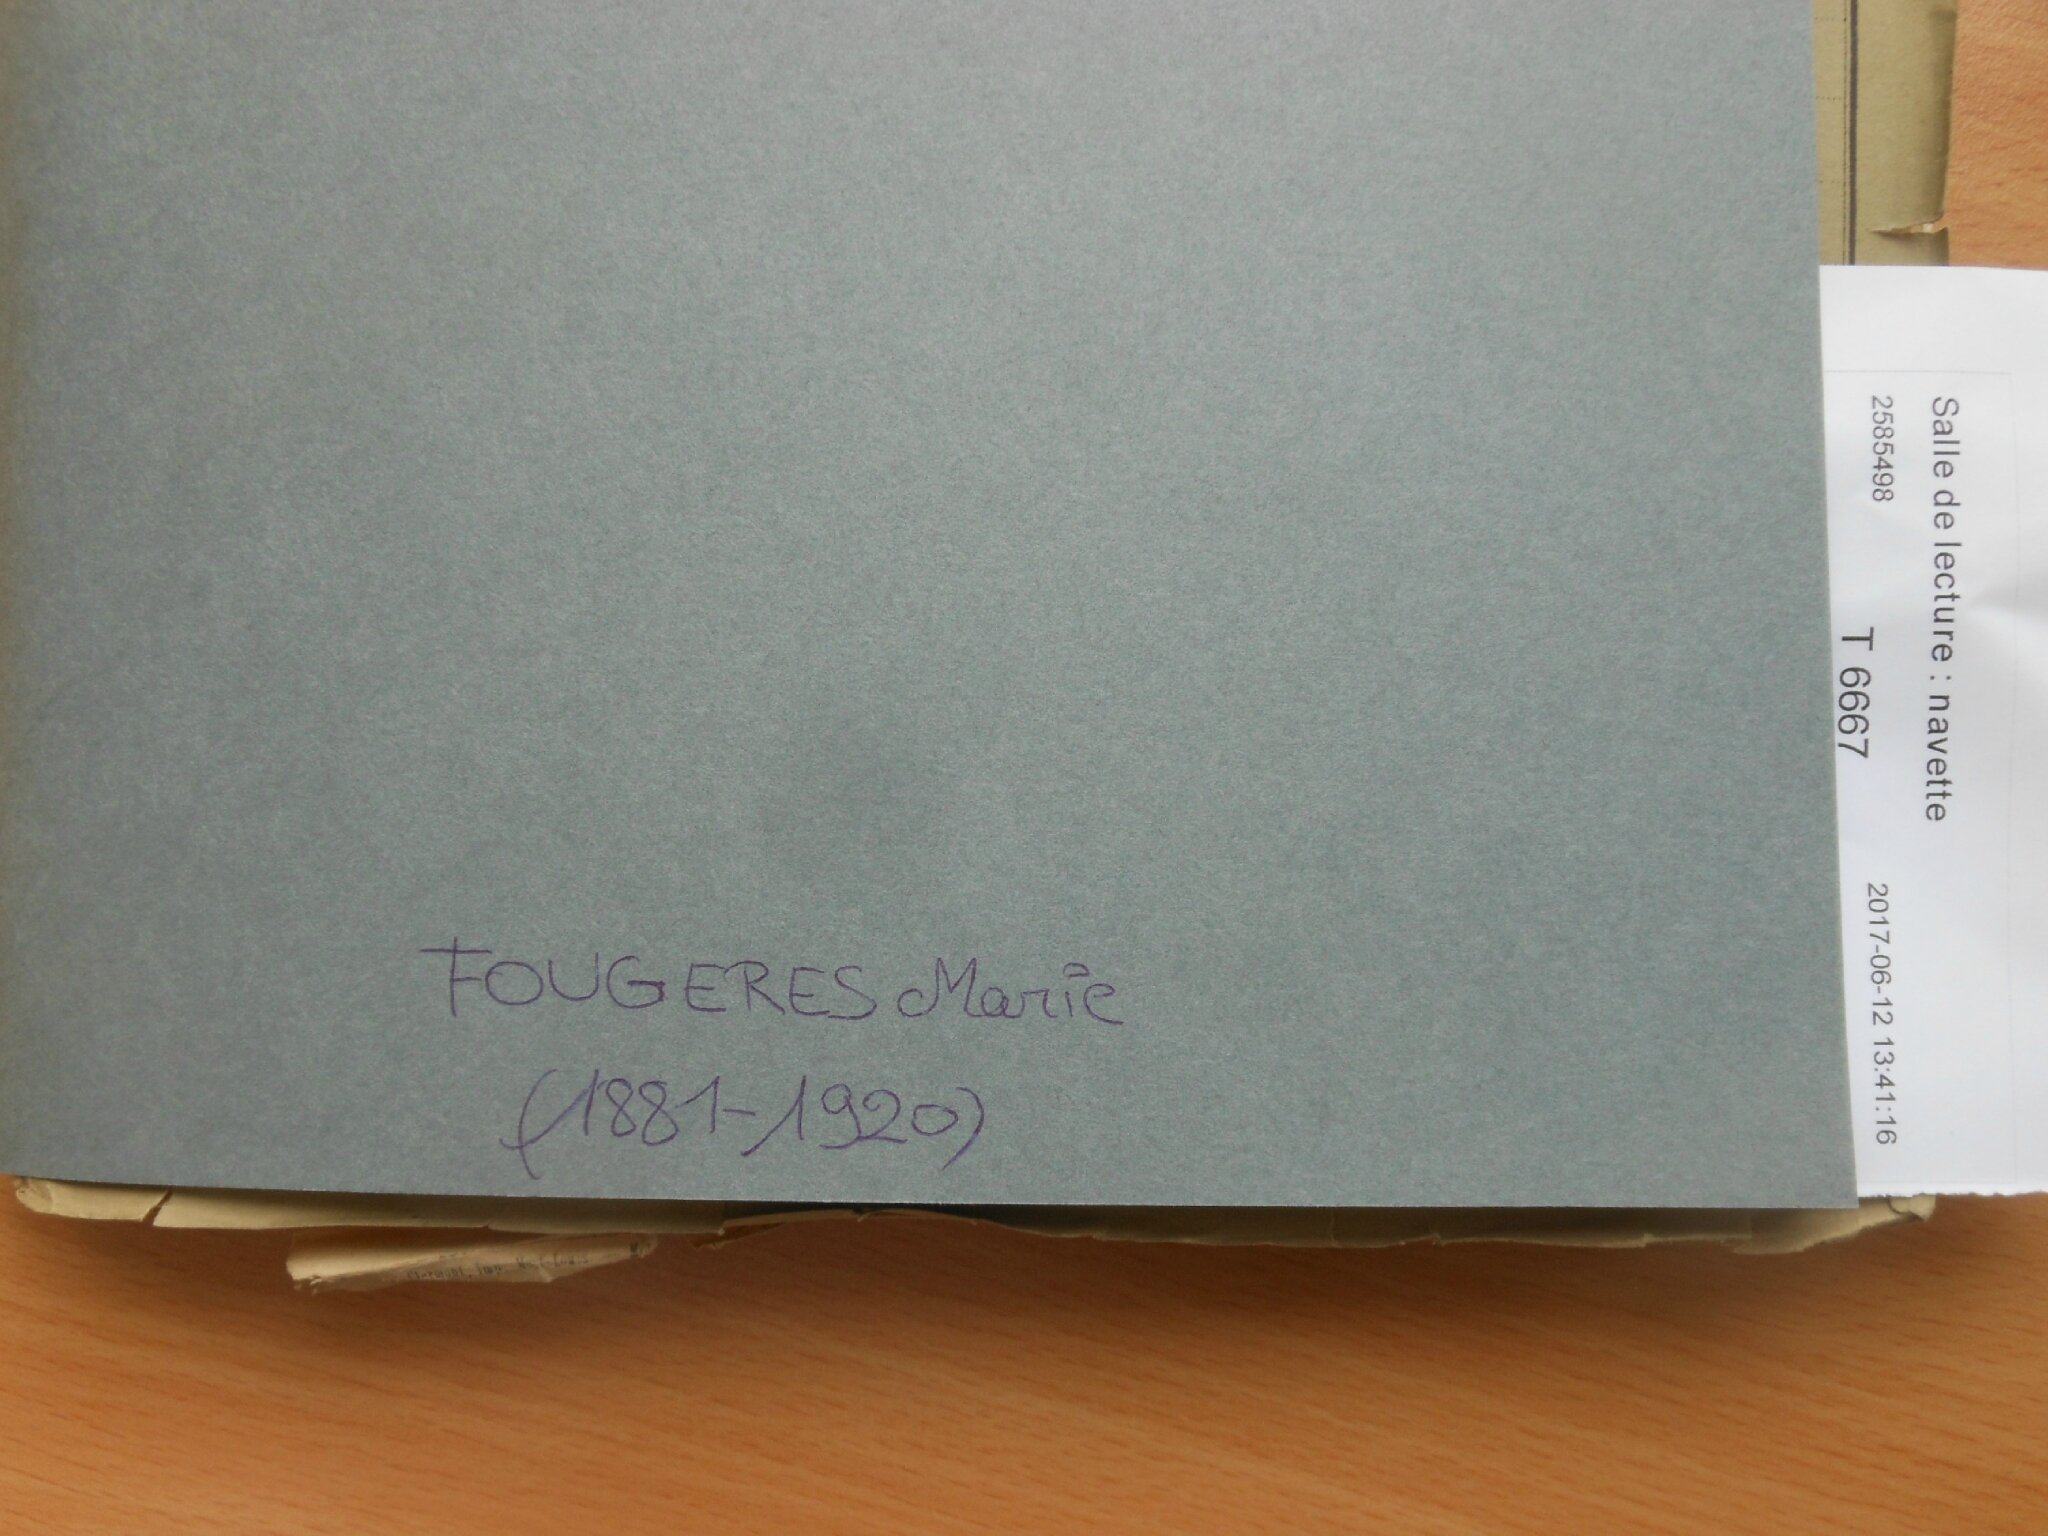 FOUGERE Marie_dossier (1)